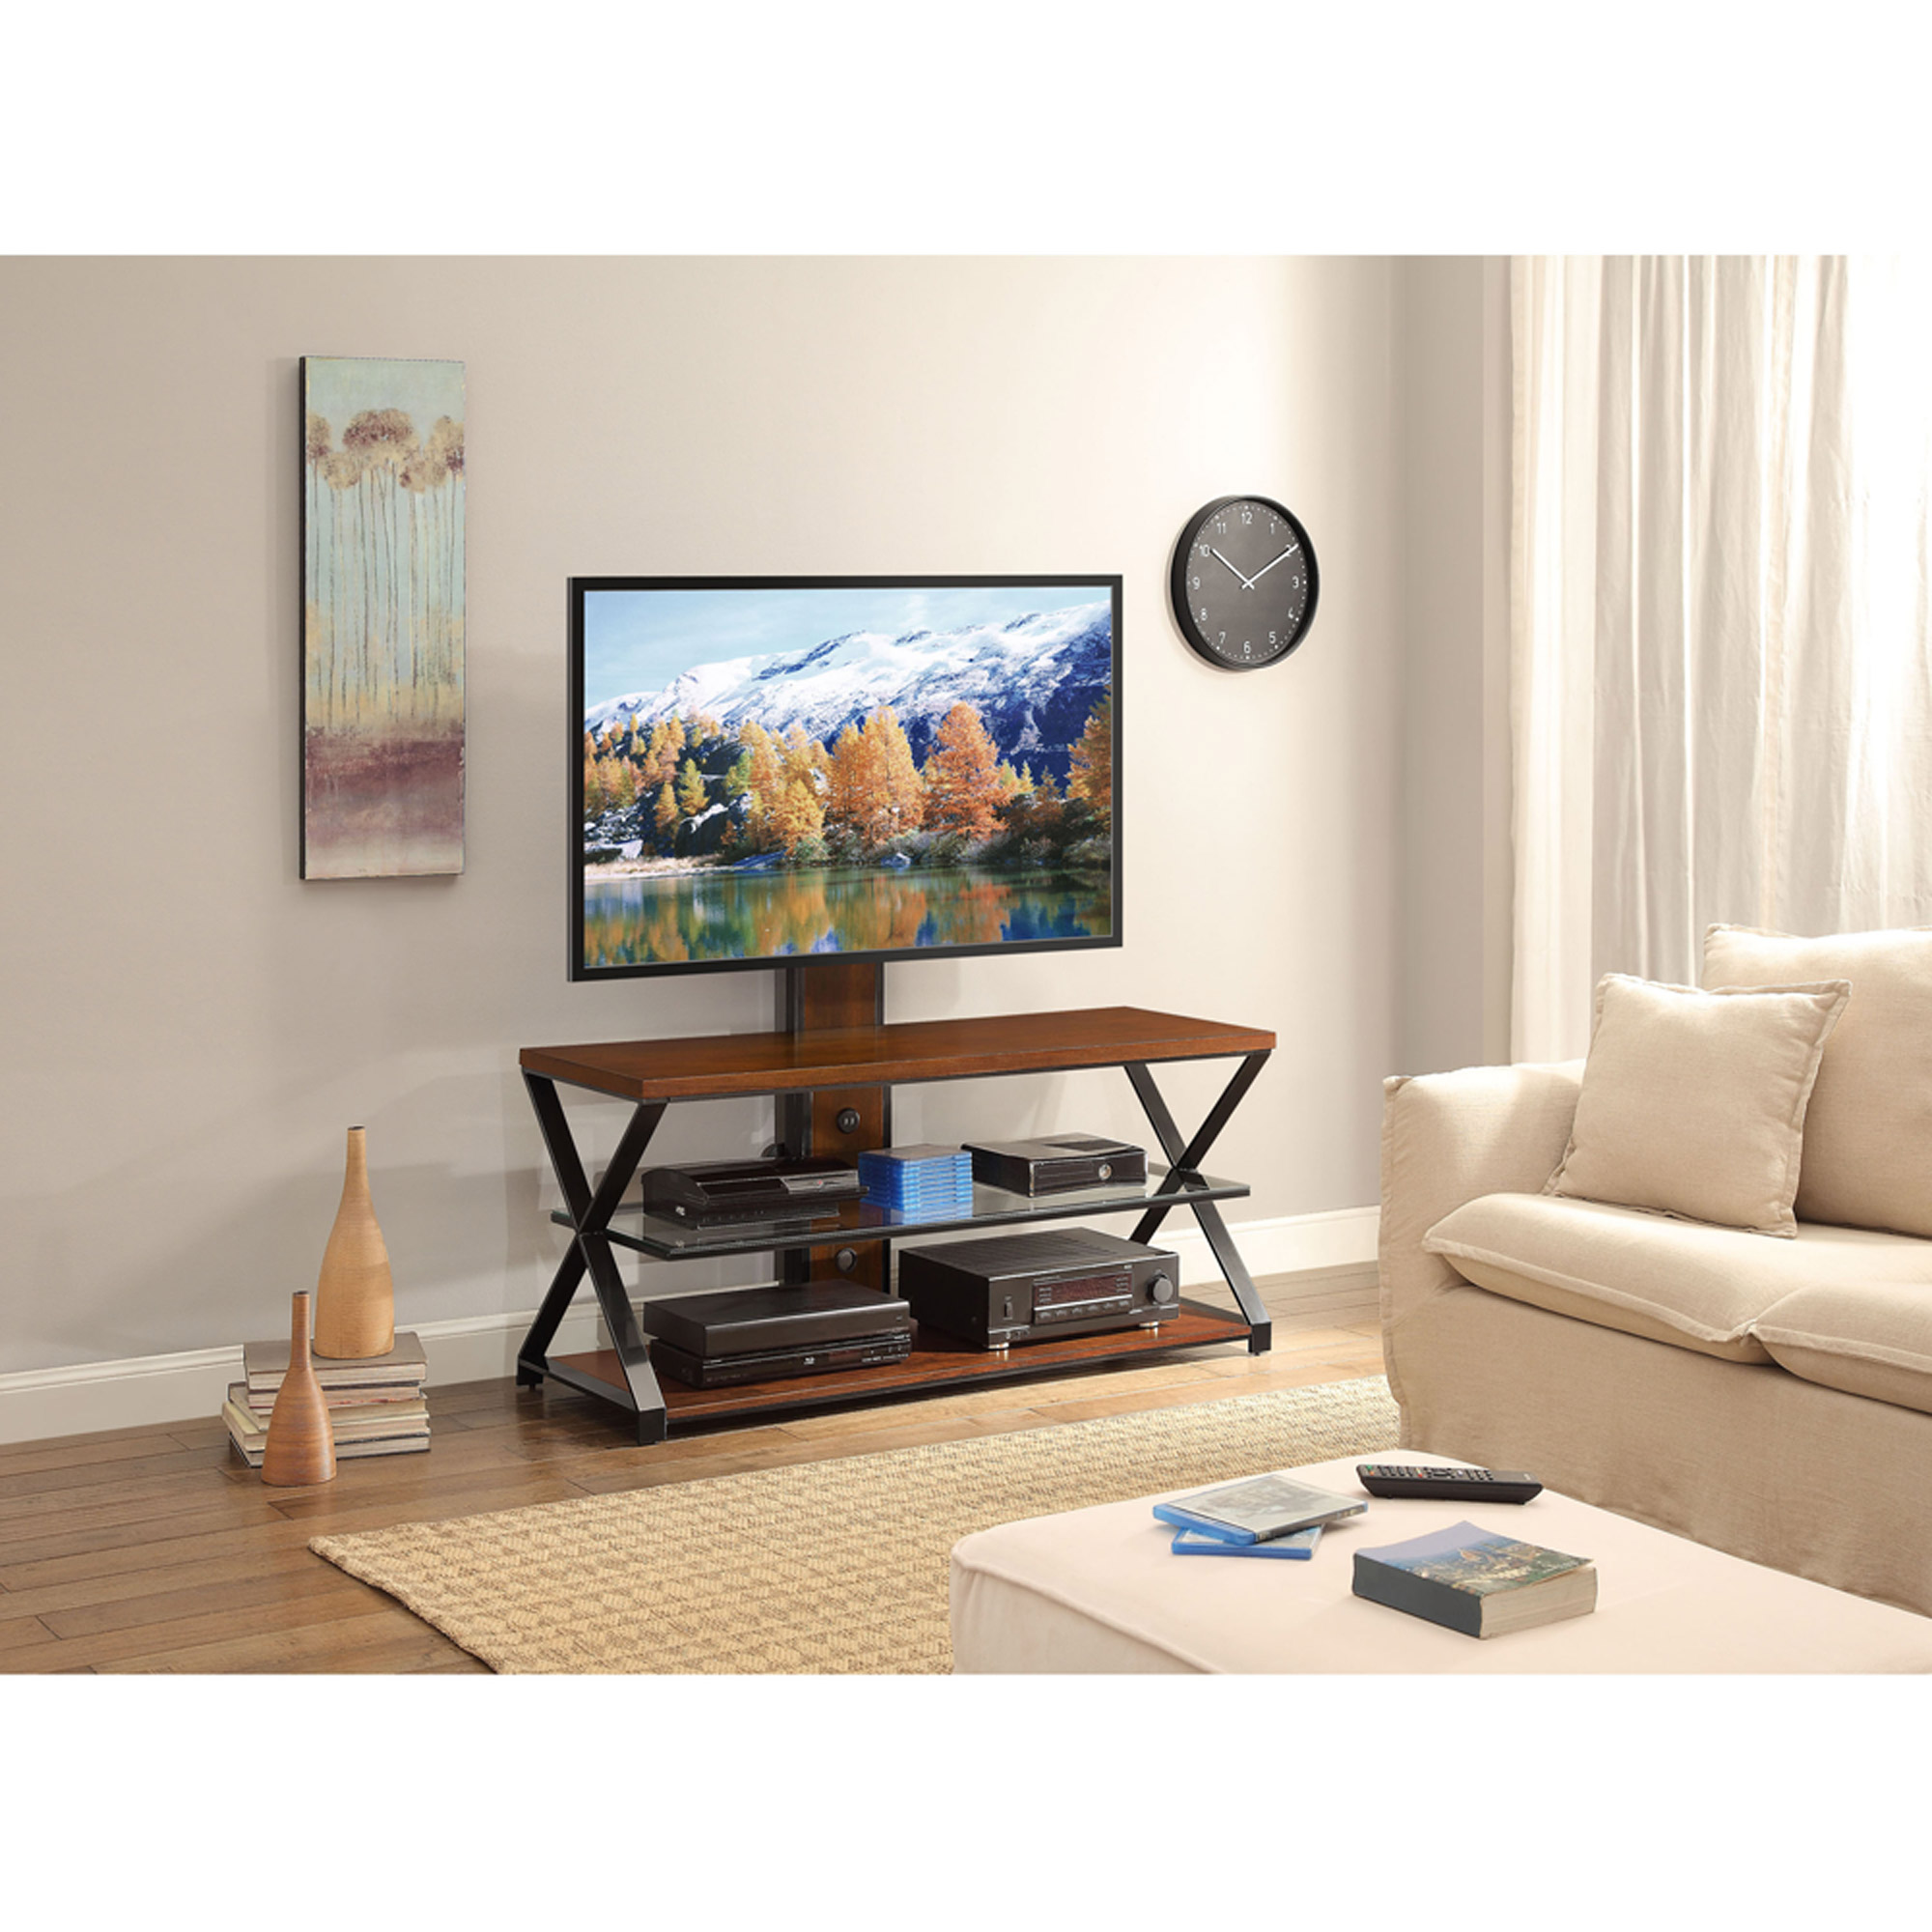 Sarah Tv Stands Jaxon 3 In 1 Cognac Tv Stand For Tvs Up To 70